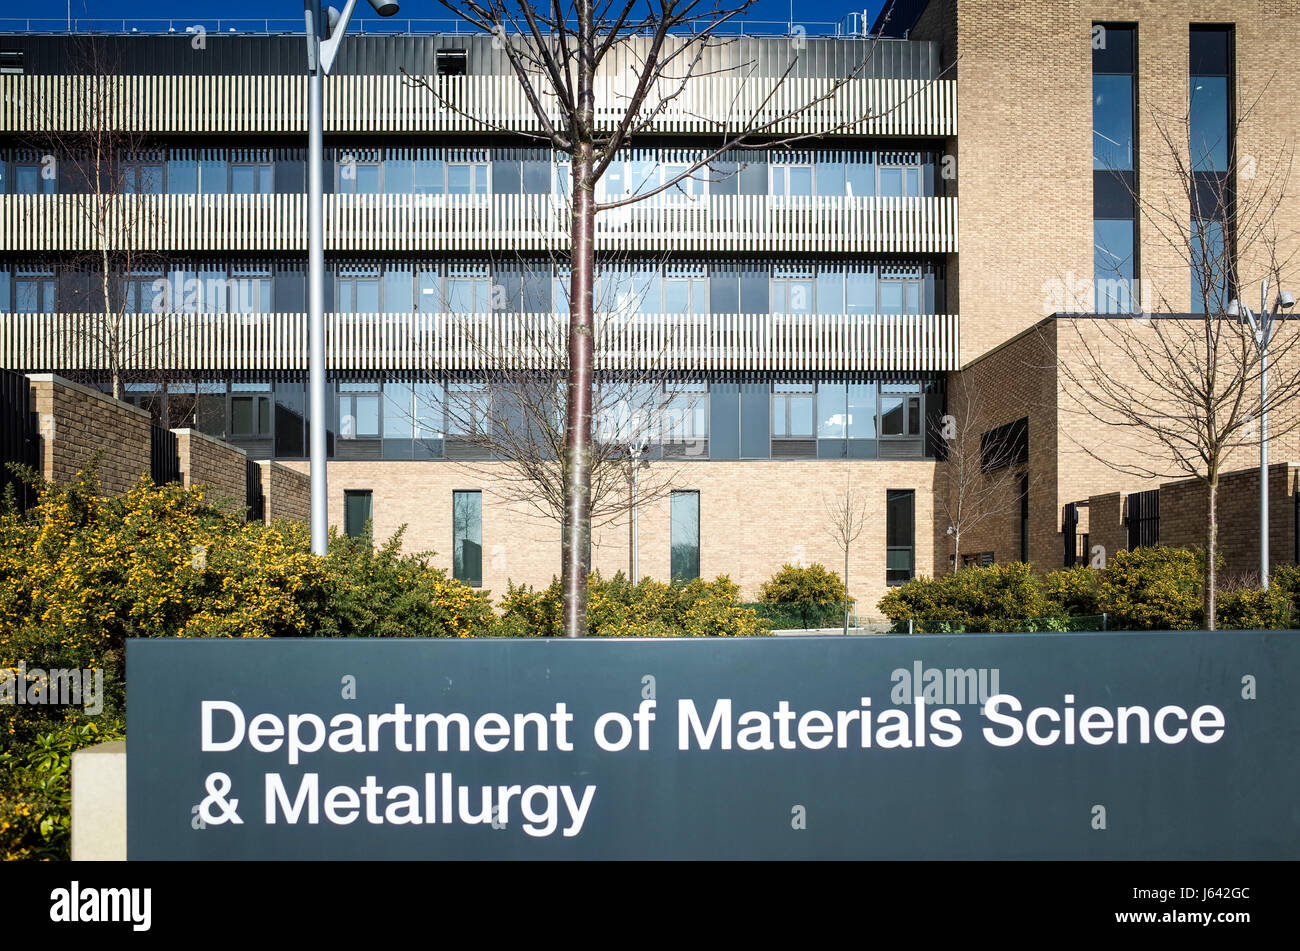 Department of Materials Science building (2013) on the West Cambridge site of the University of Cambridge, Cambridge, - Stock Image